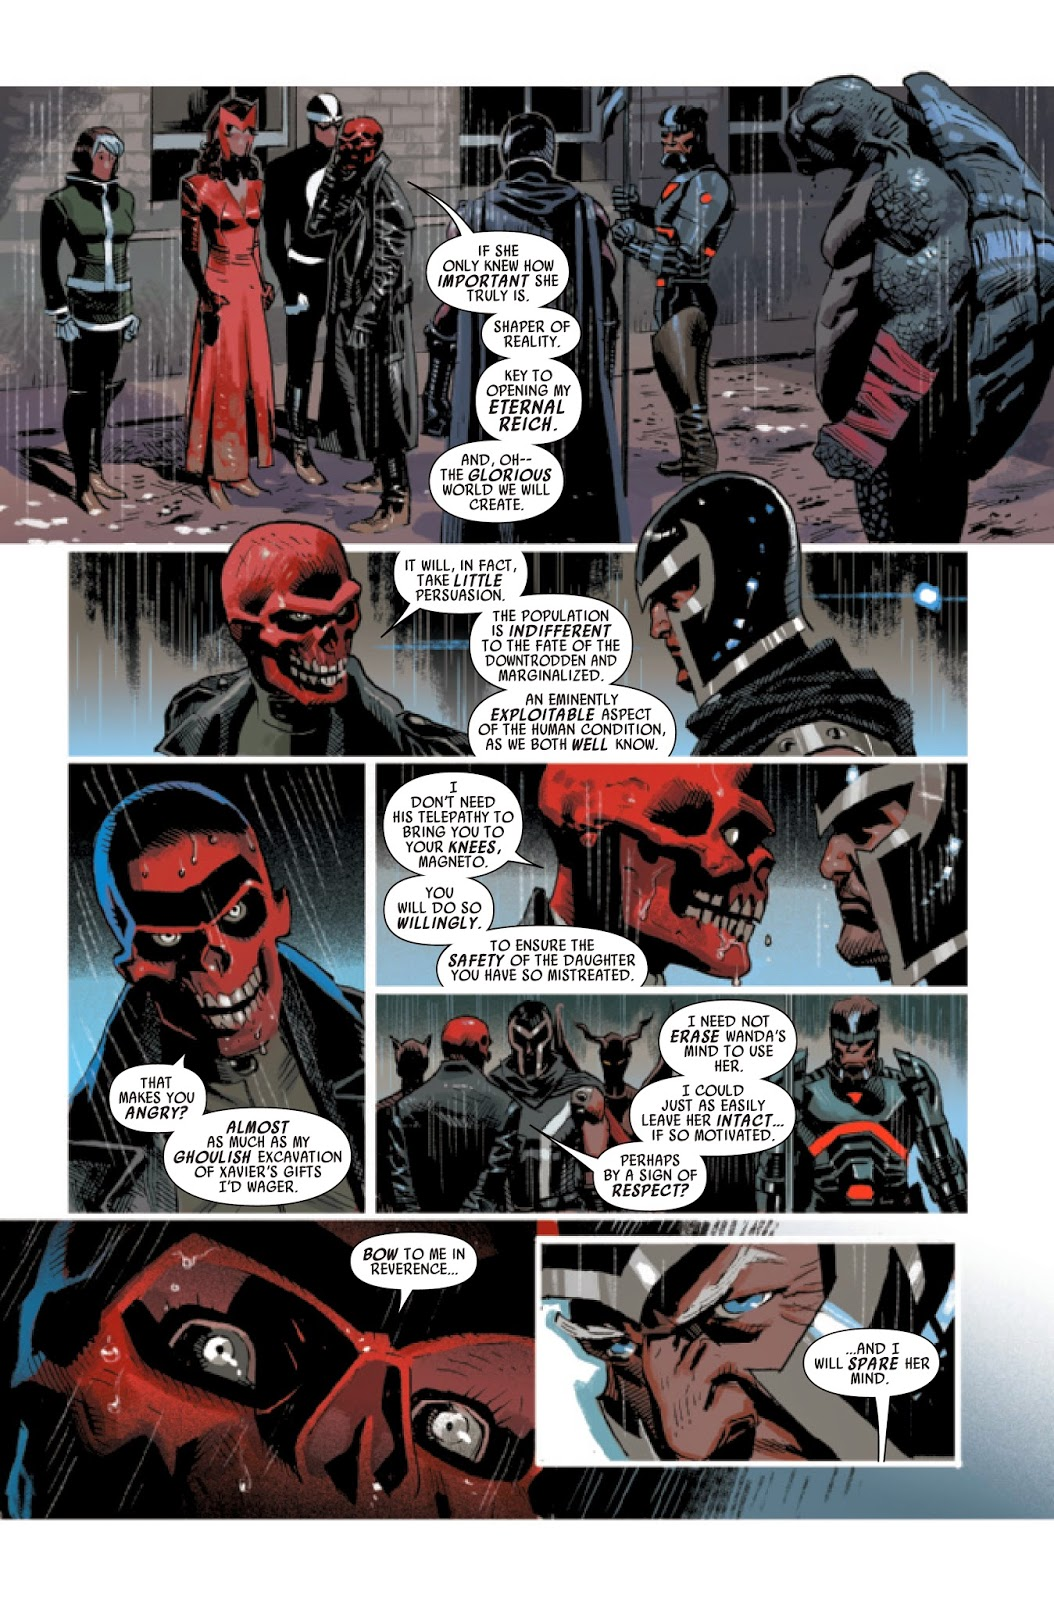 Review of Marvels Uncanny Avengers #25 by Rick Remender and Daniel Acuna